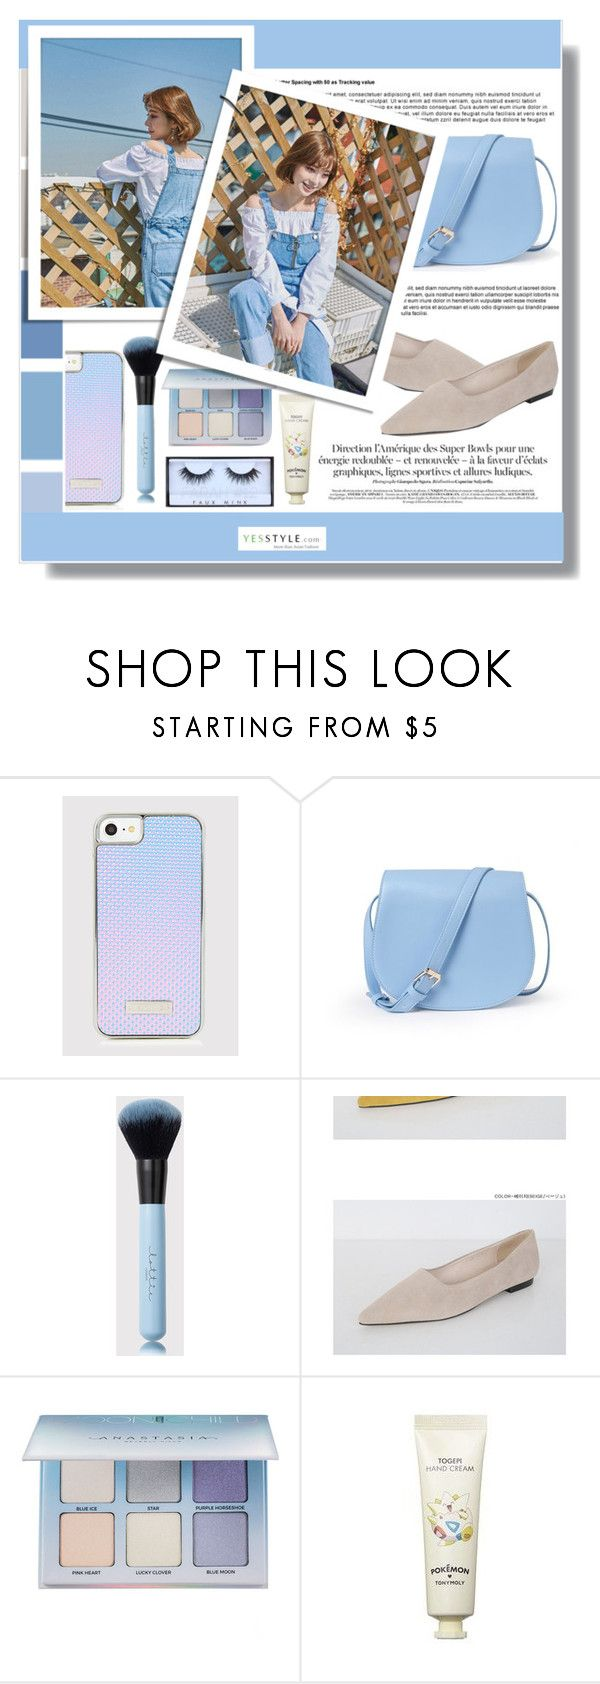 """""""YesStyle - 10% off coupon"""" by clumsy-dreamer ❤ liked on Polyvore featuring Anastasia Beverly Hills, Tony Moly, Huda Beauty, yesstyle, prespring and productAnchor"""